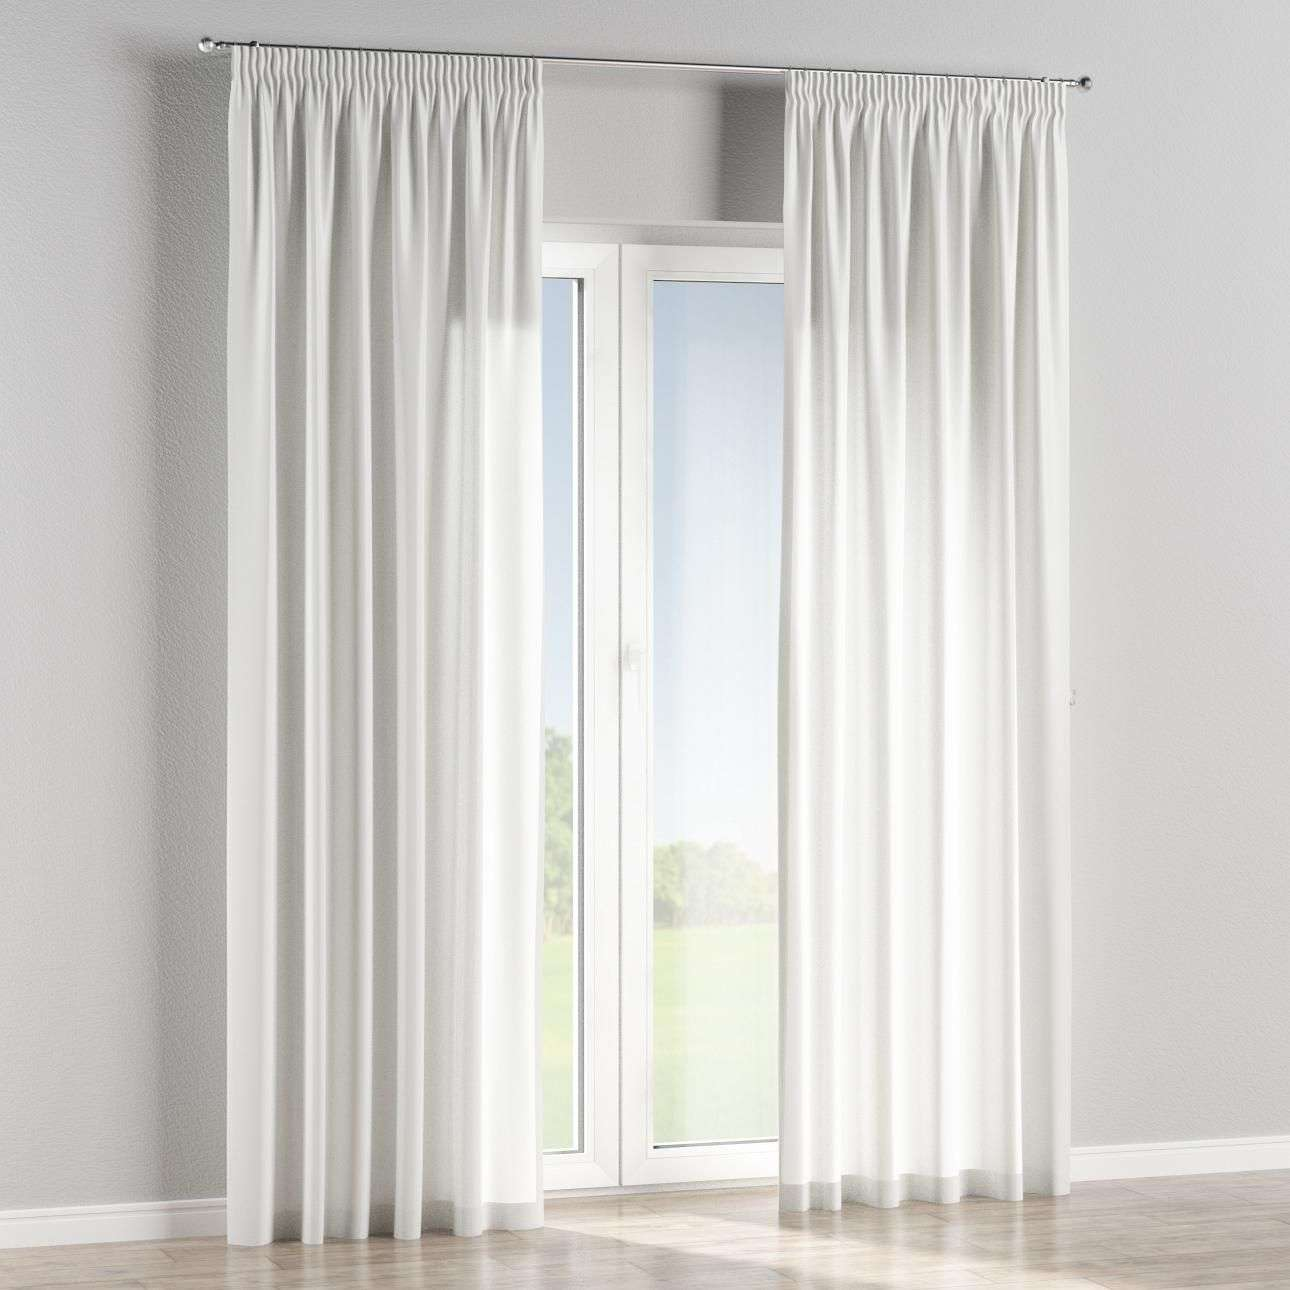 Pencil pleat lined curtains in collection Norge, fabric: 140-80